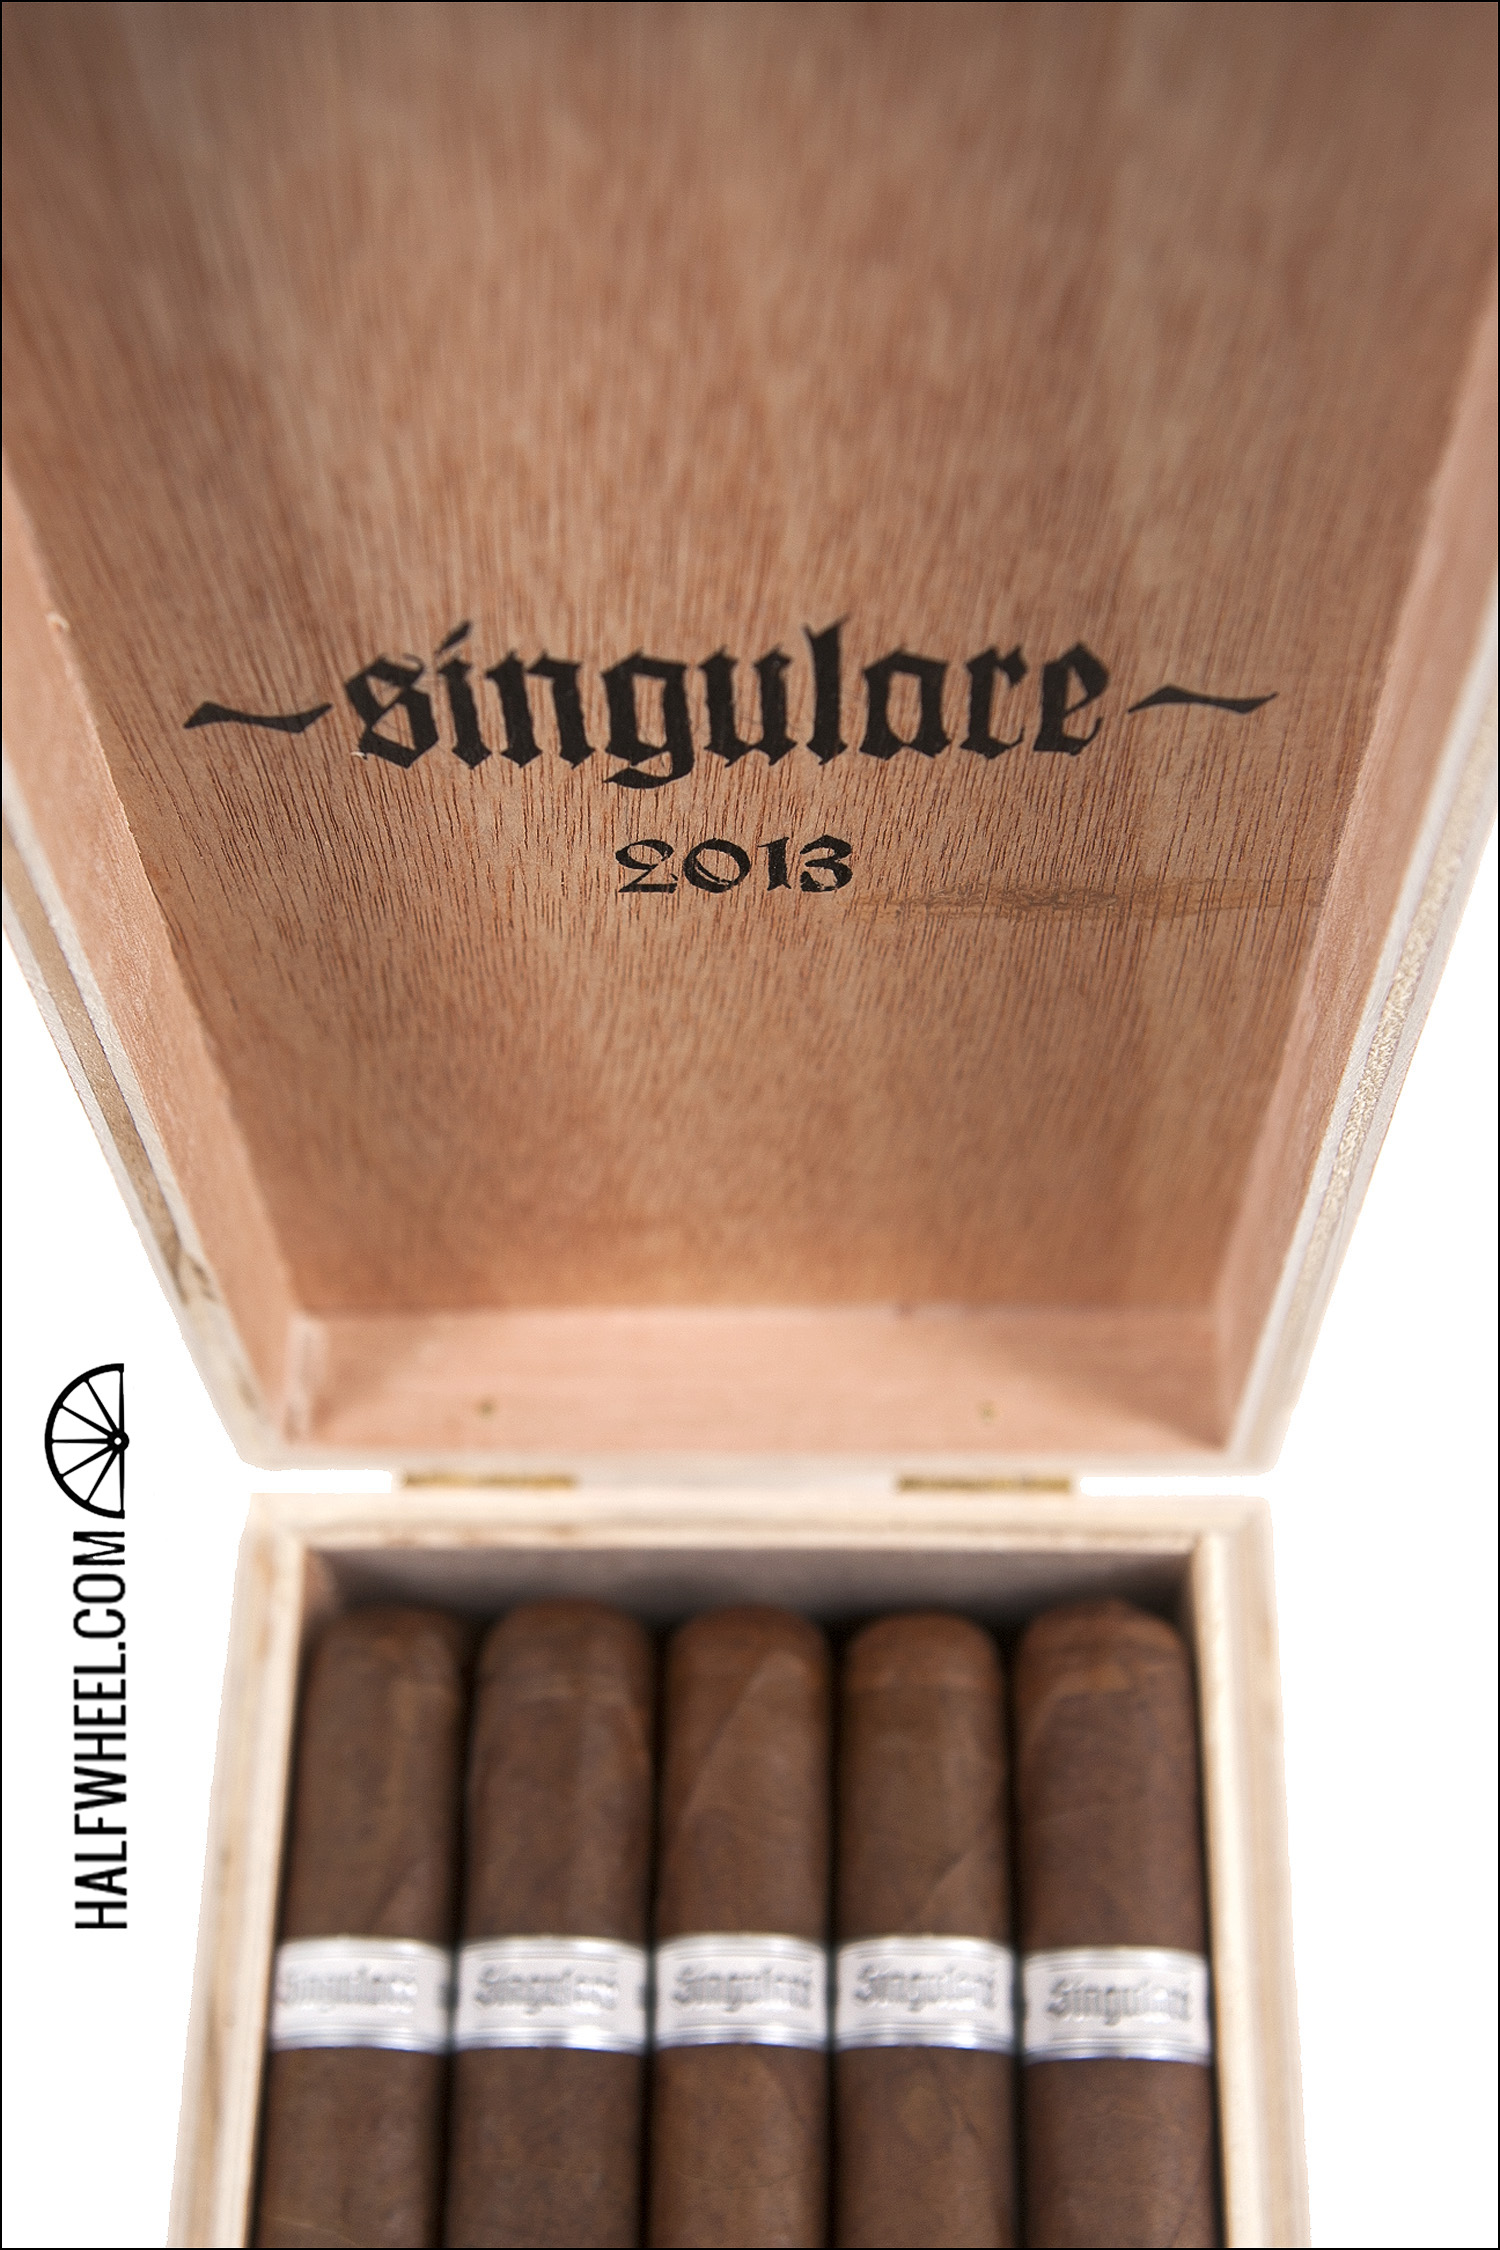 Illusione Singluare 2013 Rose Croix Box 3